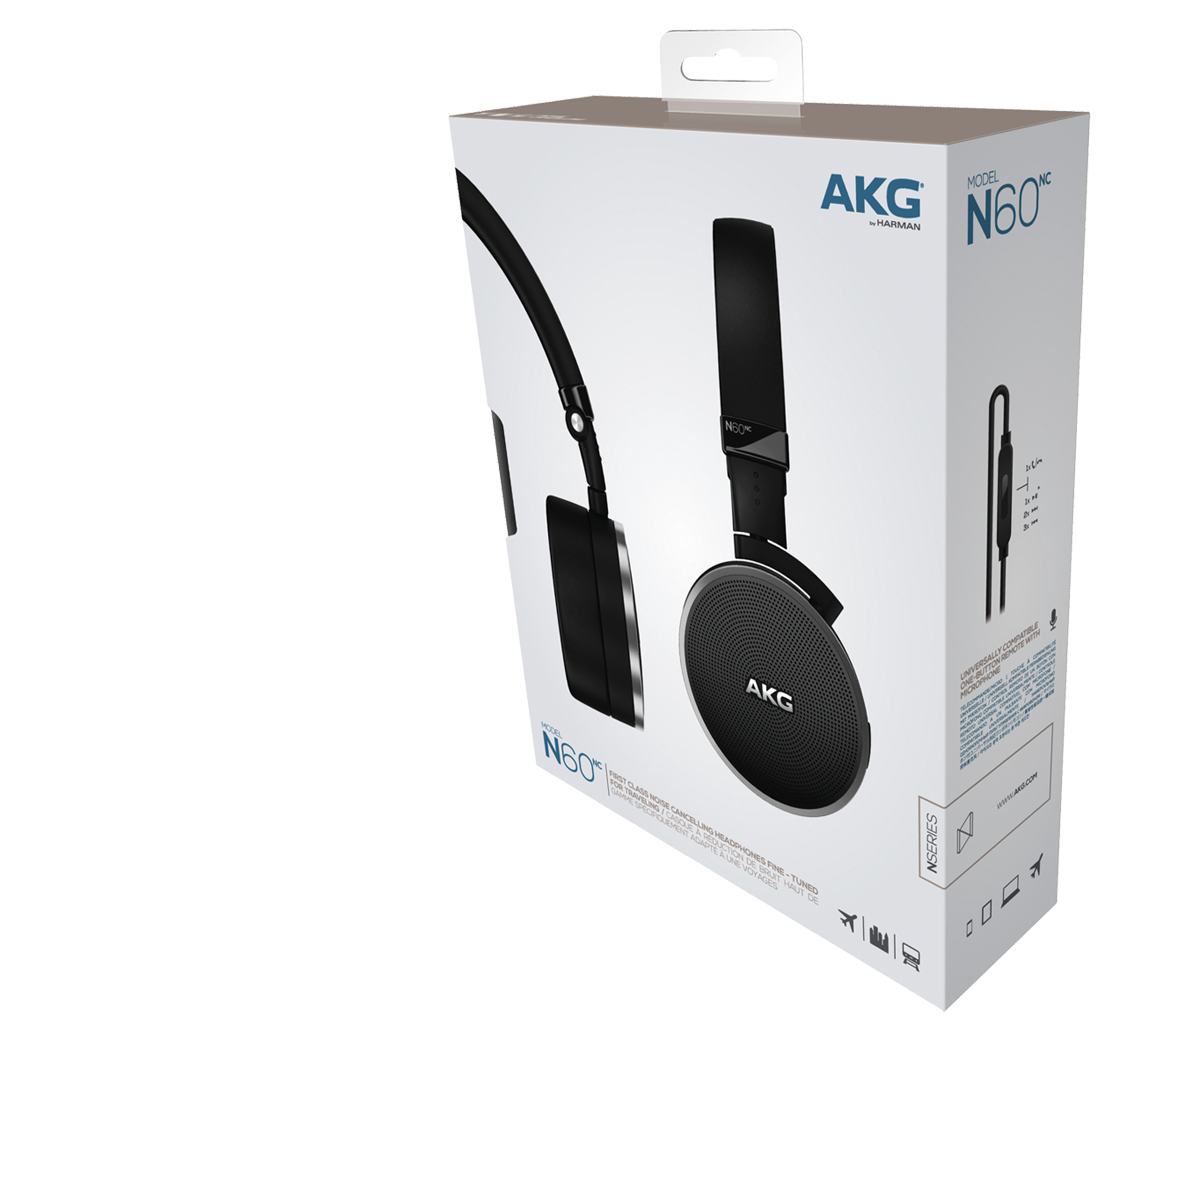 Akg N60nc Premium Headphones With Noise Cancellation Military Headphone Jack Wiring Diagram Spec Sheet En